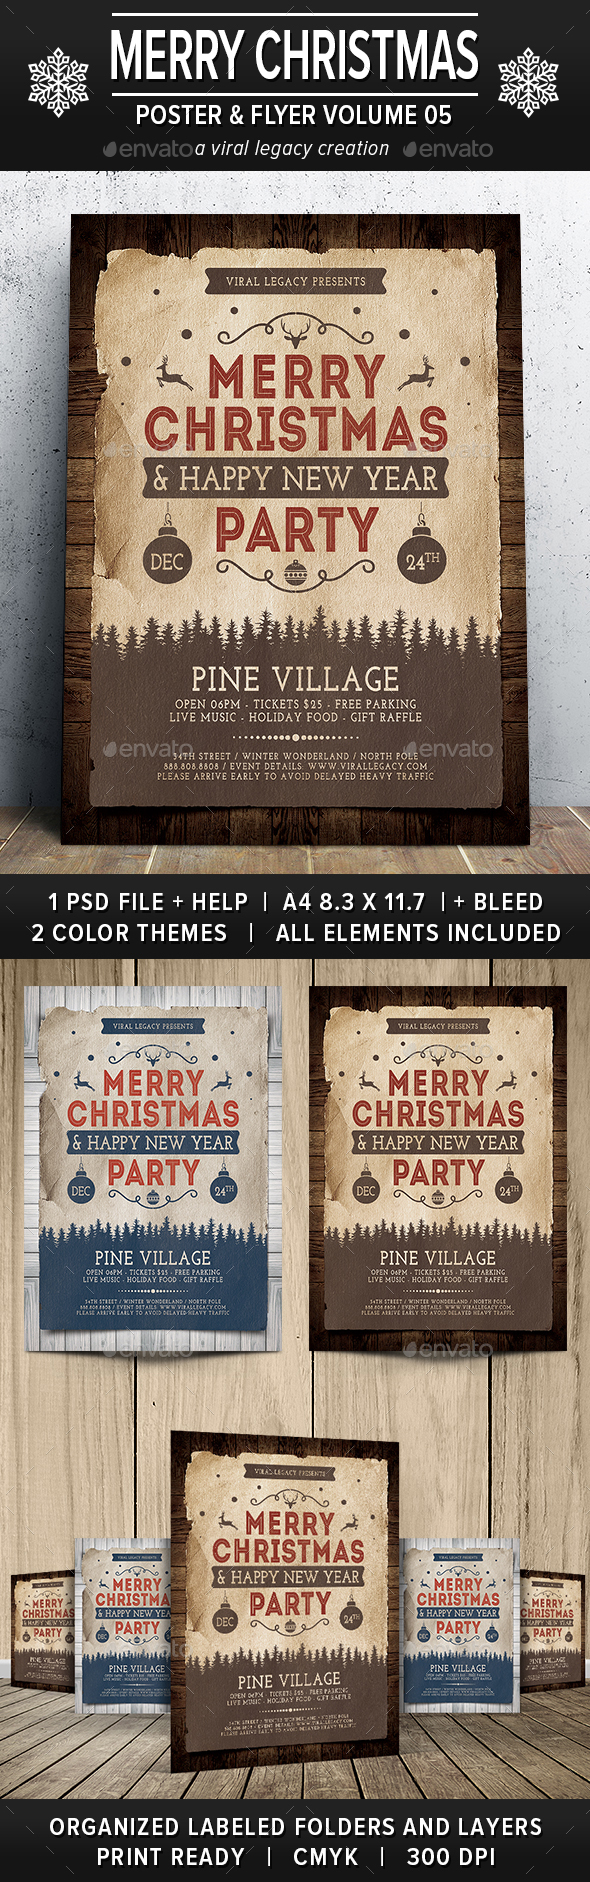 Merry Christmas Poster / Flyer V05 - Flyers Print Templates